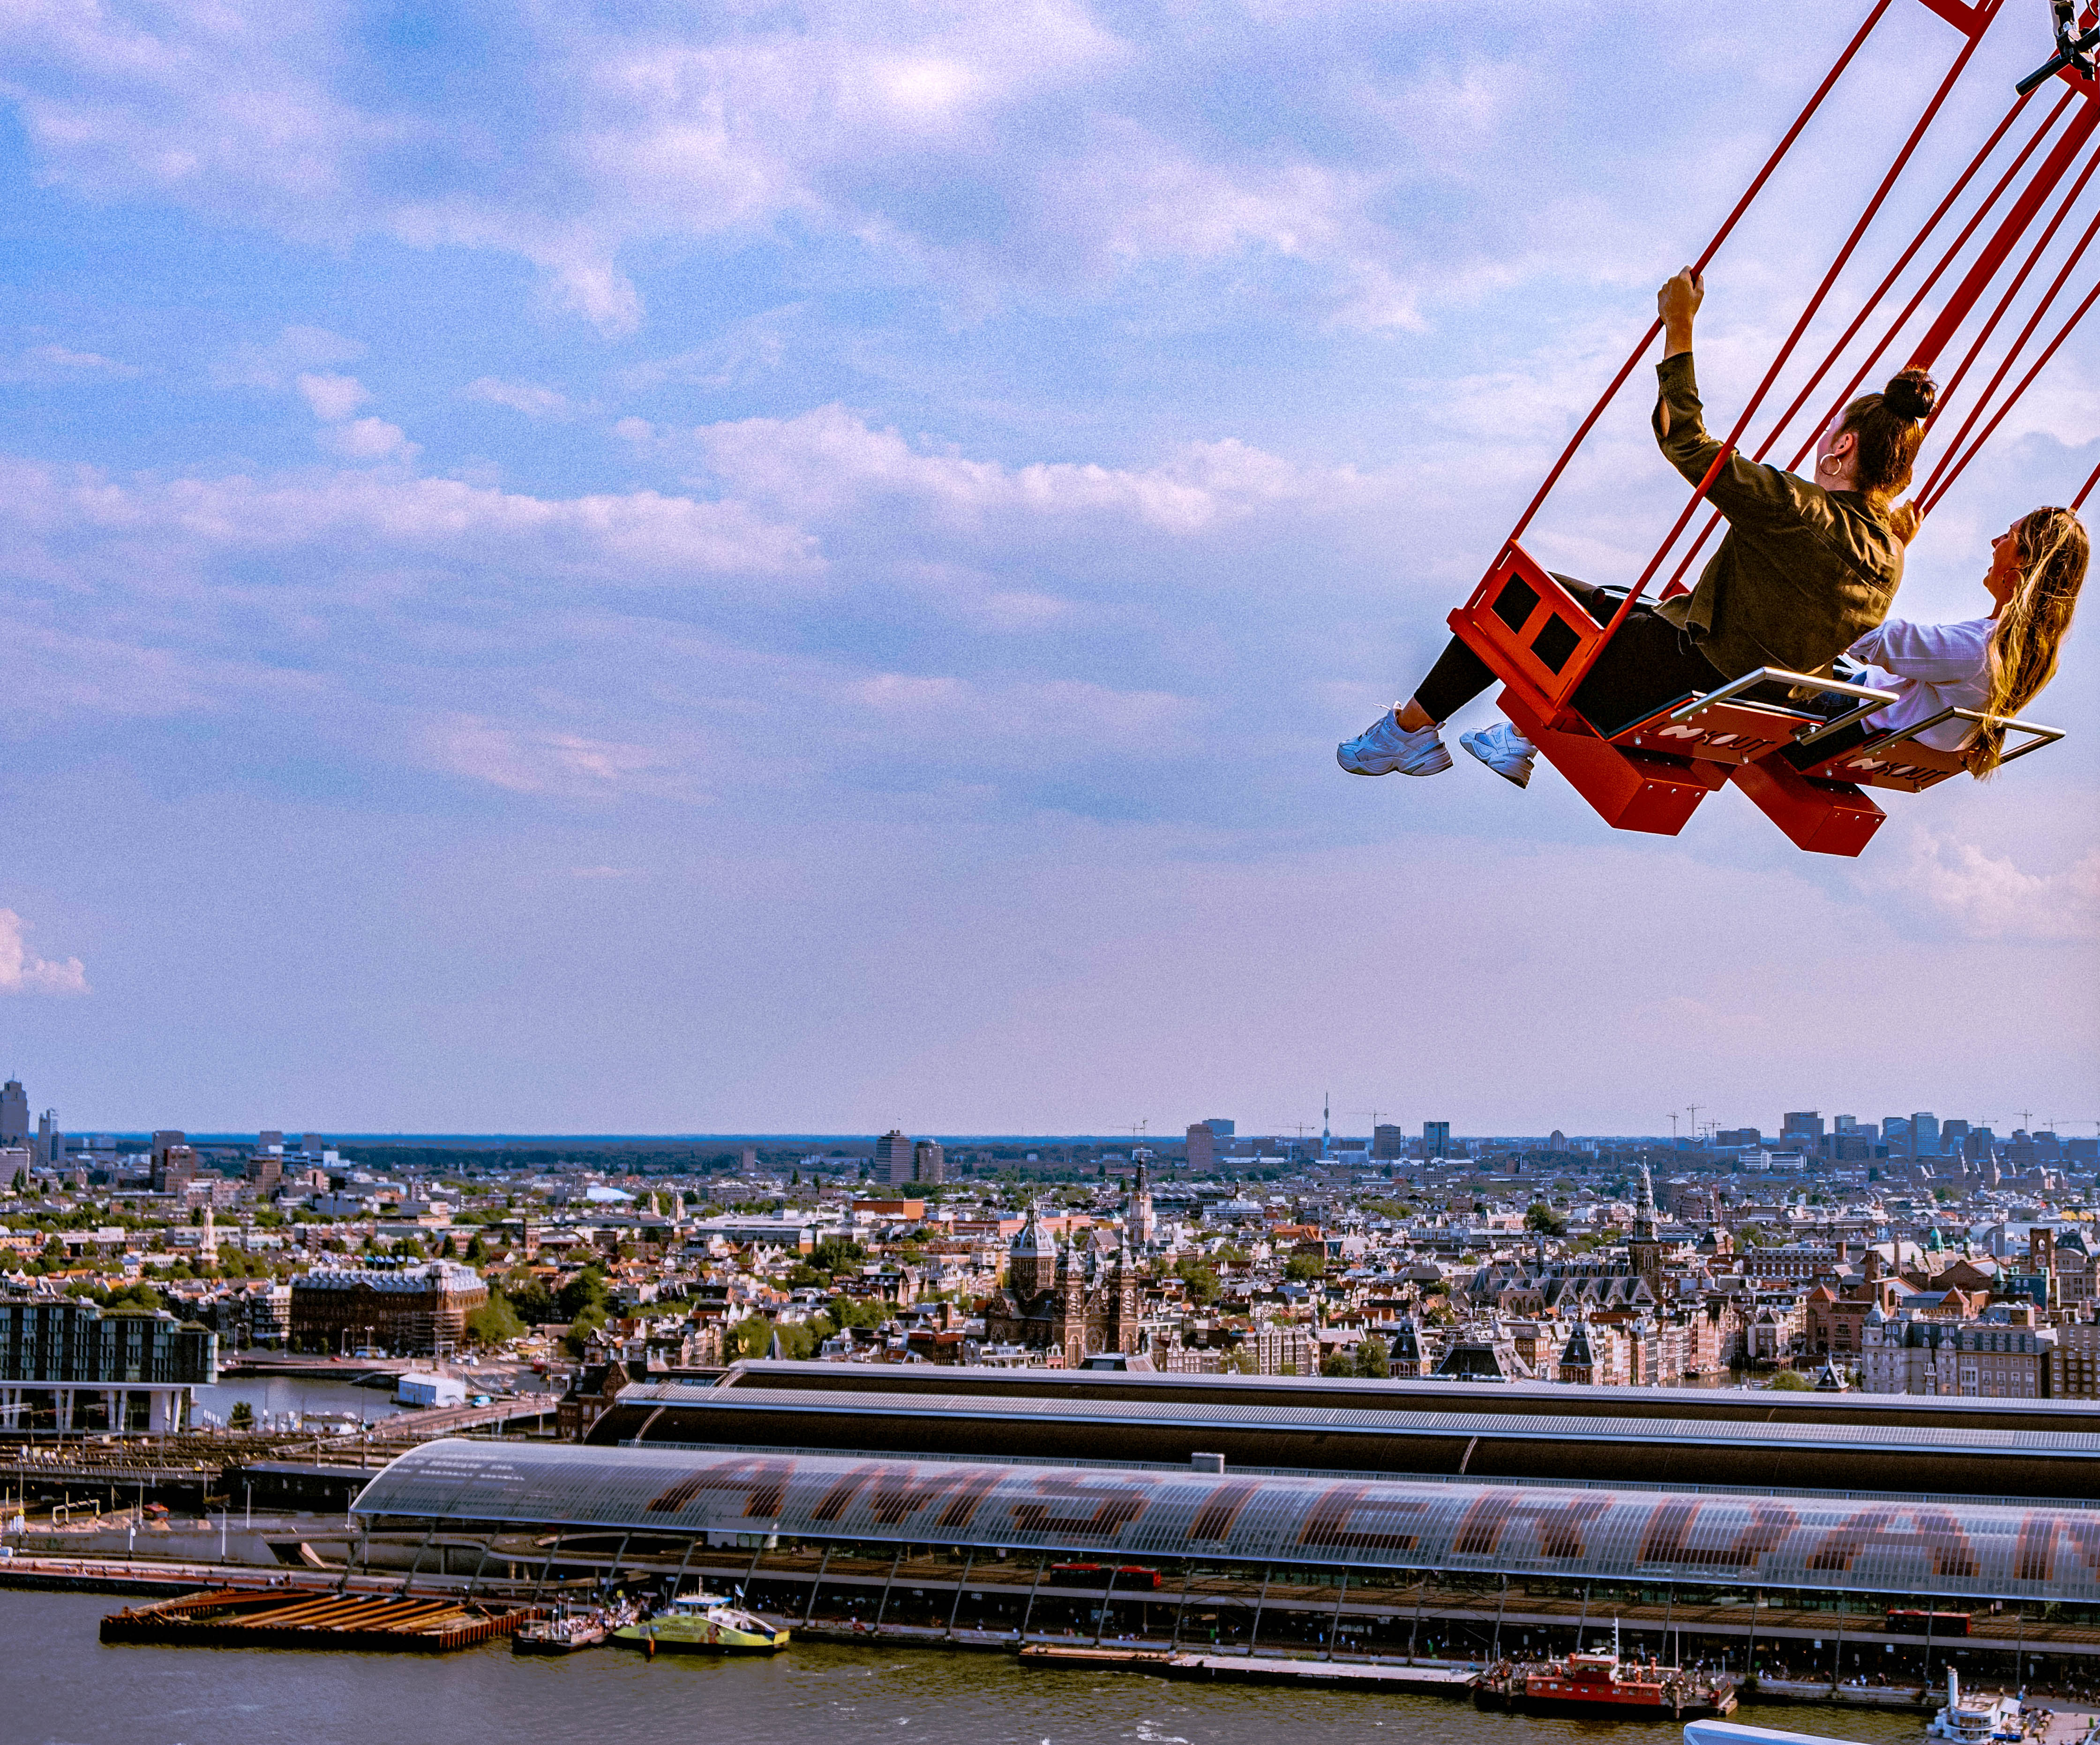 Two women on the A'dam Tower swing with centraal station and the Amsterdam skyline in the background.